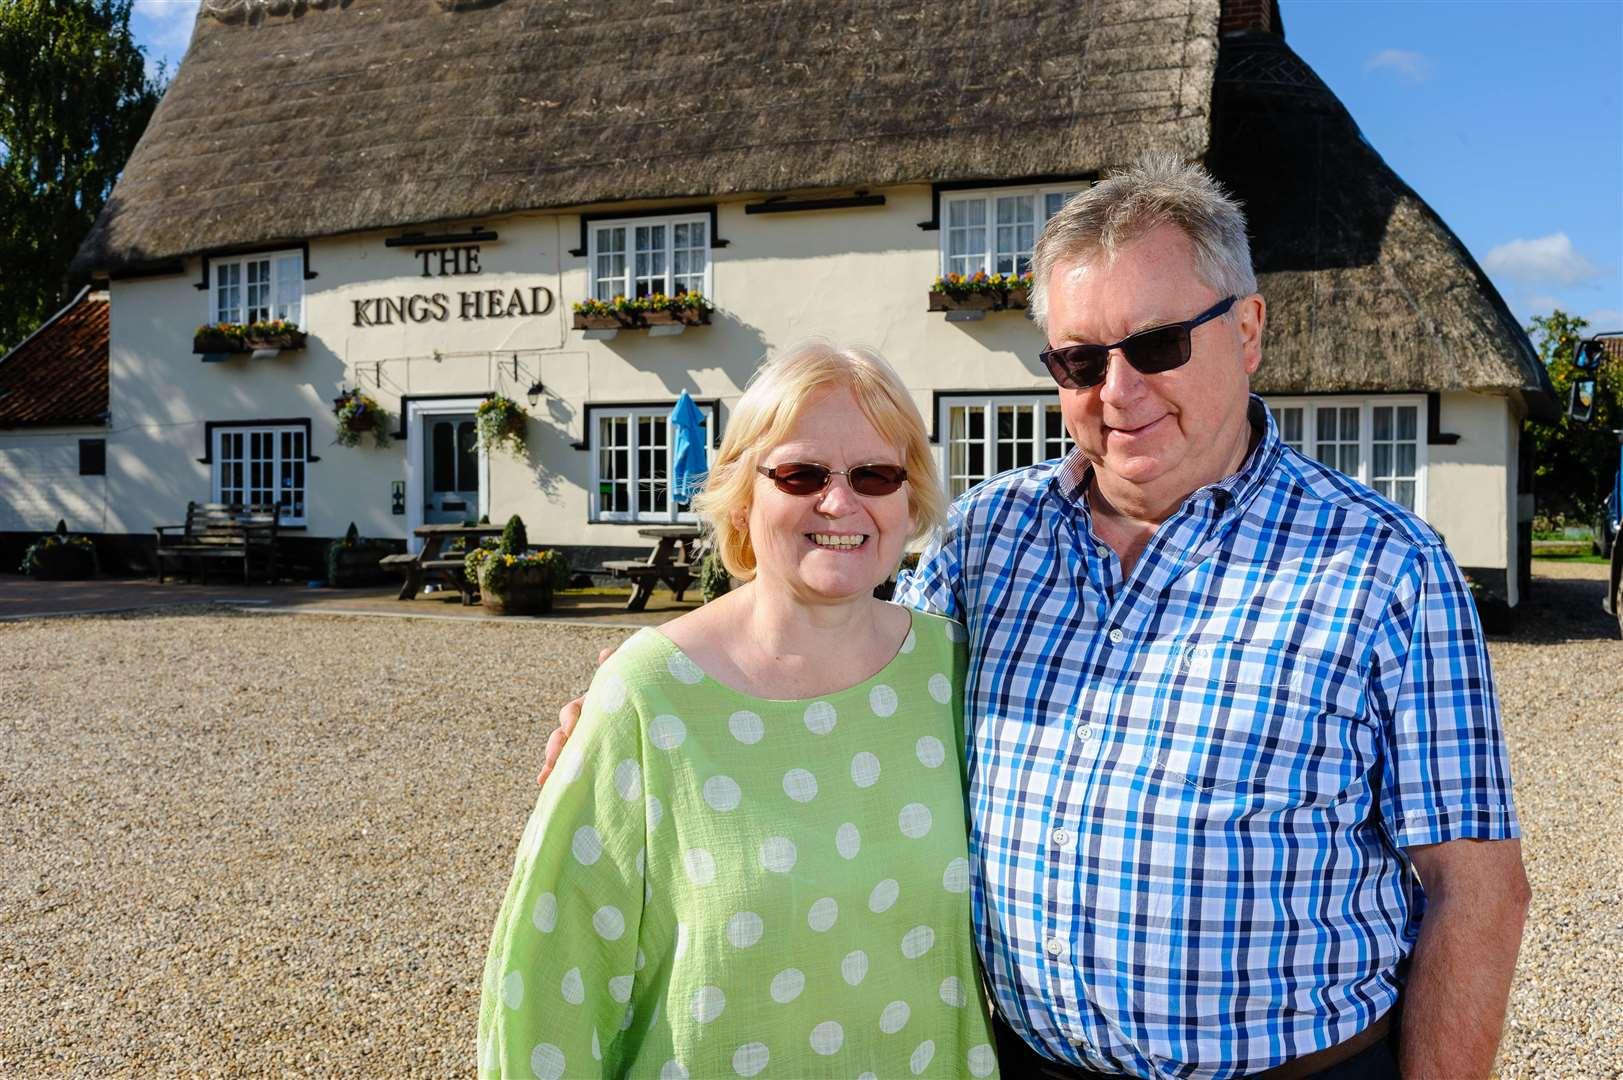 George and Angie Estcourt have put the 17th century building on the market as they want to retire. Picture by Mark Bullimore.